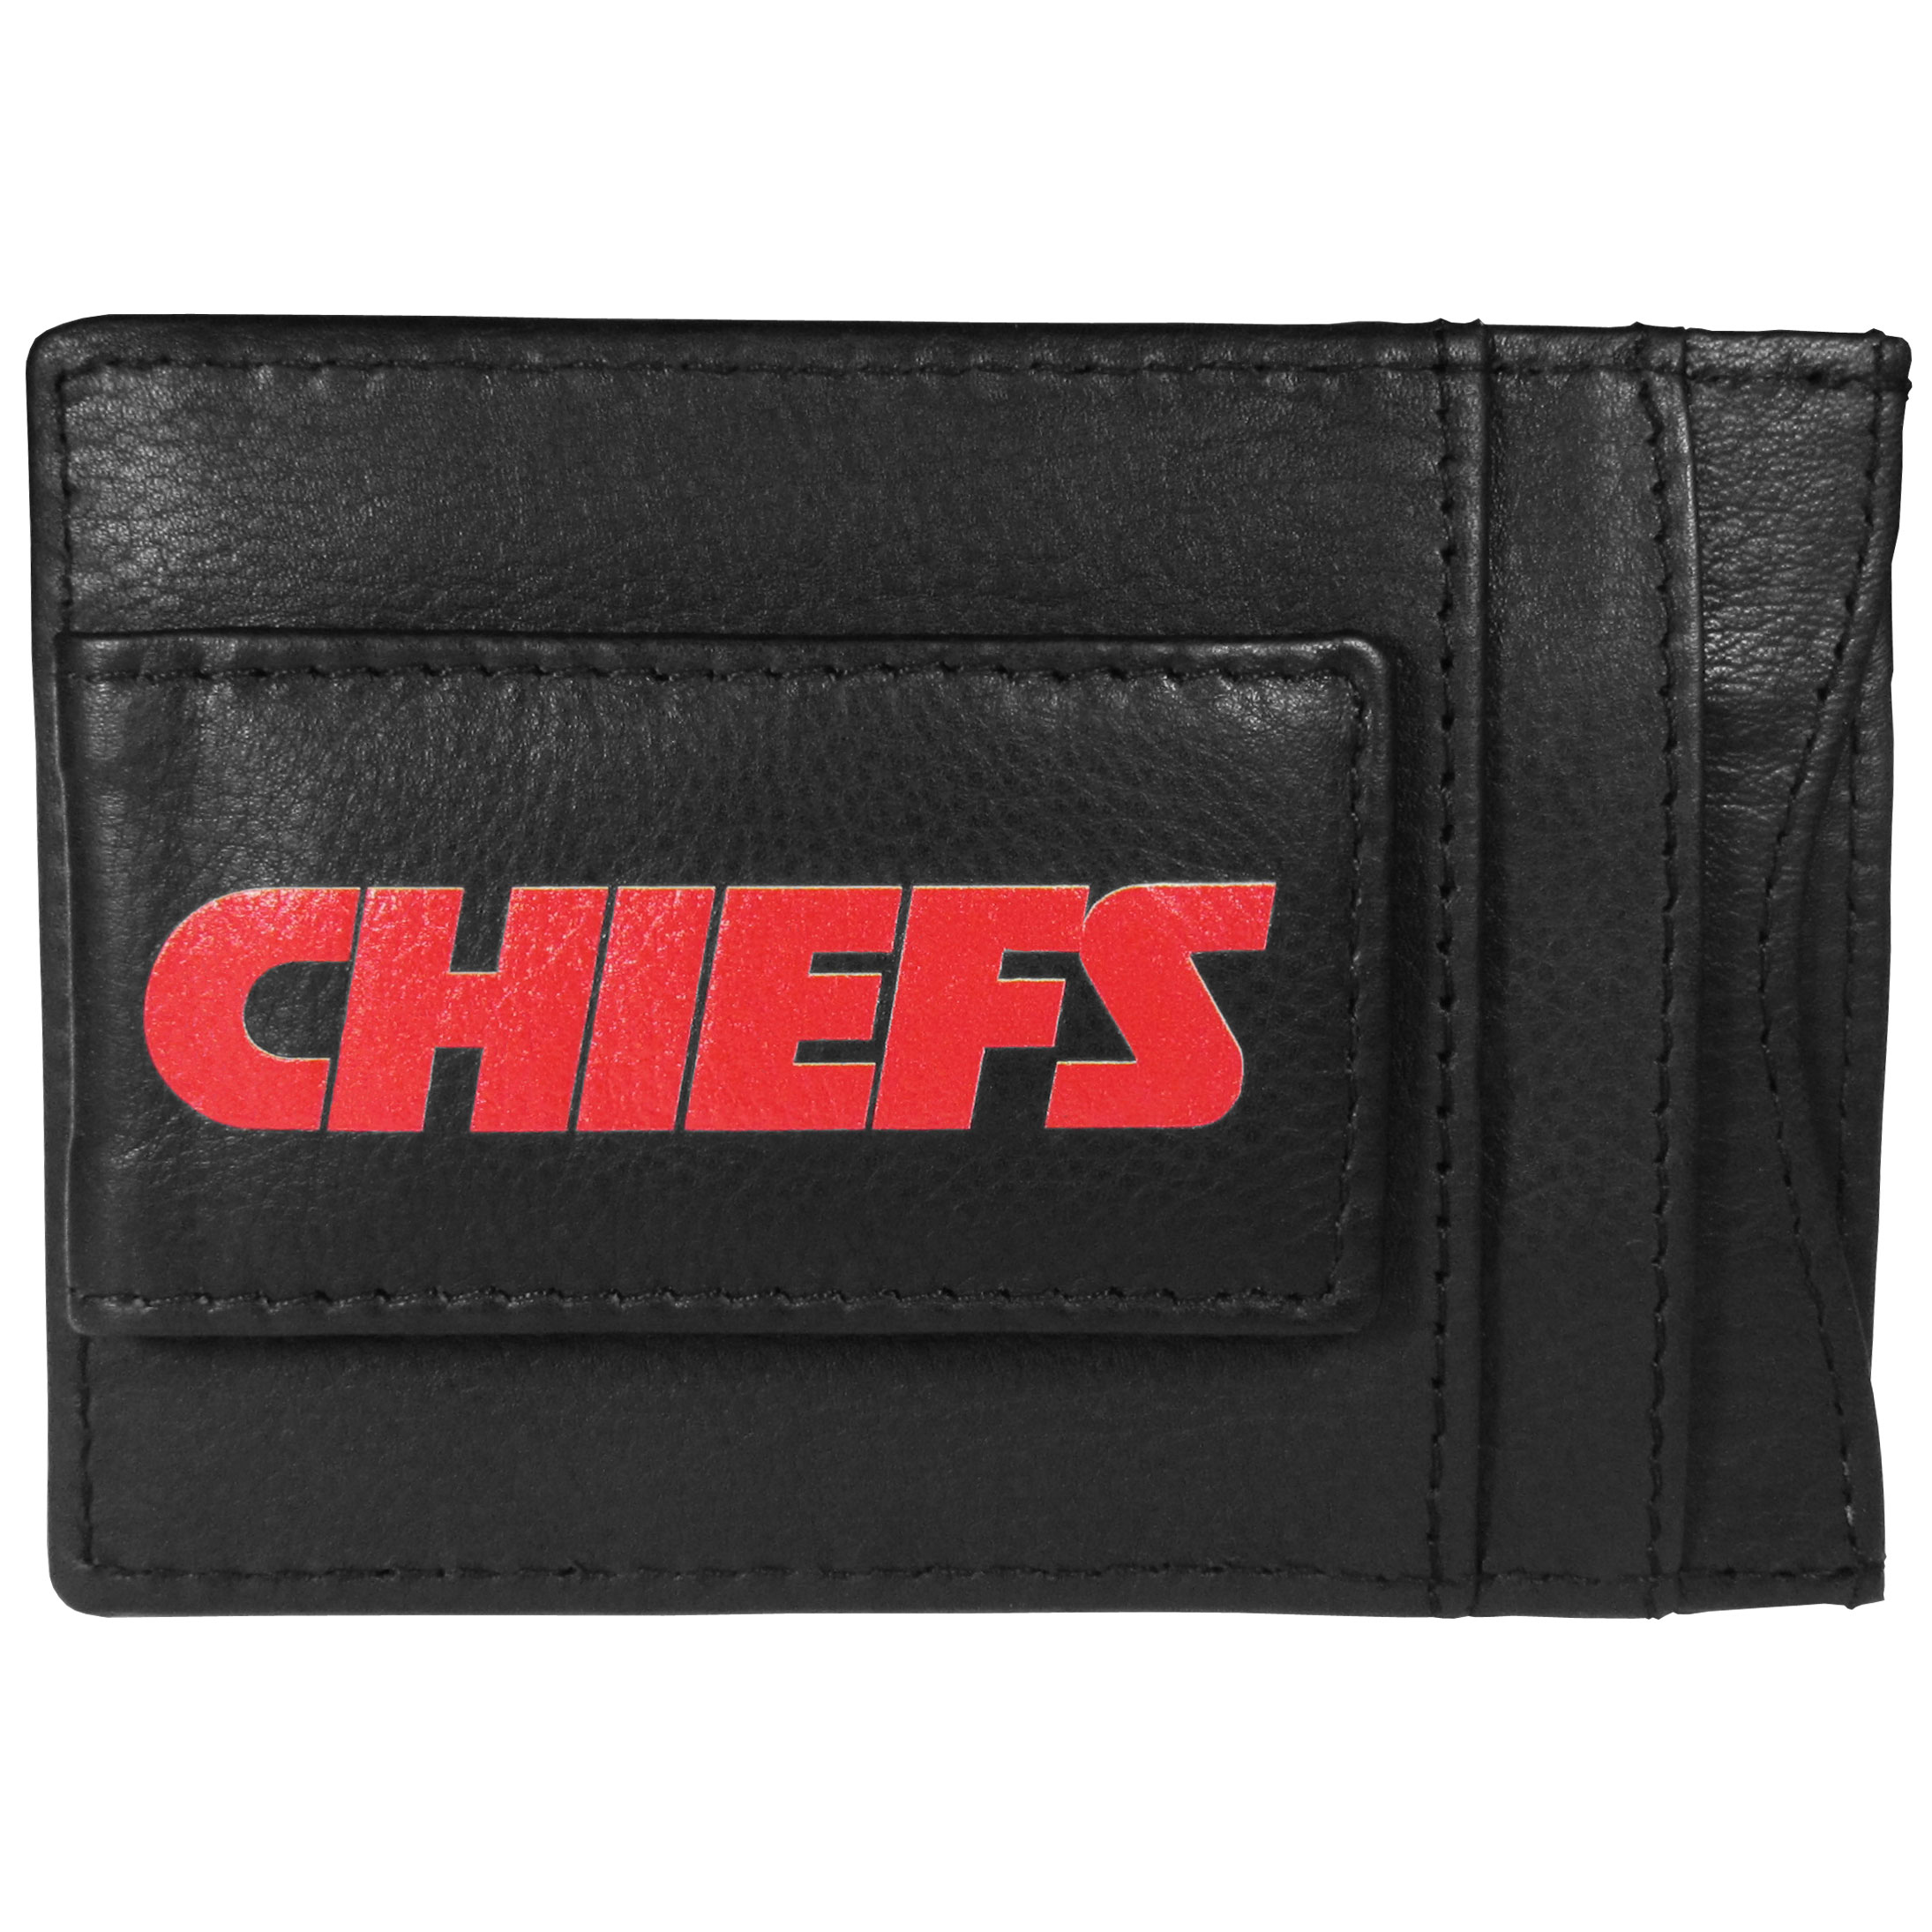 Kansas City Chiefs Logo Leather Cash and Cardholder - This super slim leather wallet lets you have all the benefits of a money clip while keeping the organization of a wallet. On one side of this front pocket wallet there is a strong, magnetic money clip to keep your cash easily accessible and the?Kansas City Chiefs team logo on the front. The versatile men's accessory is a perfect addition to your fan apparel.